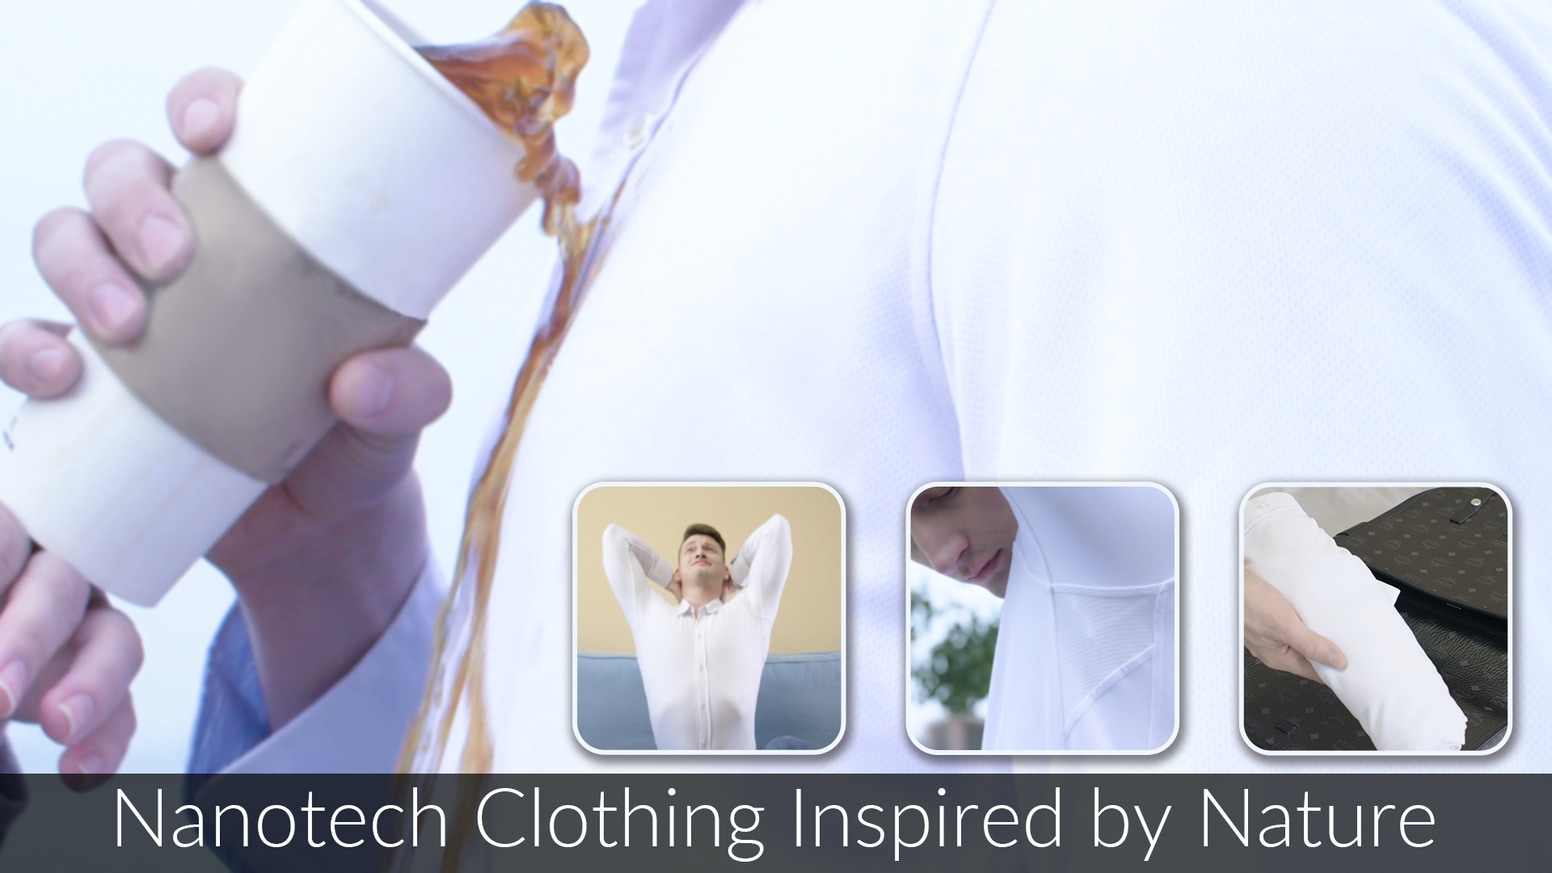 Nanotech clothing inspired by nature, we've designed a shirt that repels dirt, stains, and water while remaining comfortable.